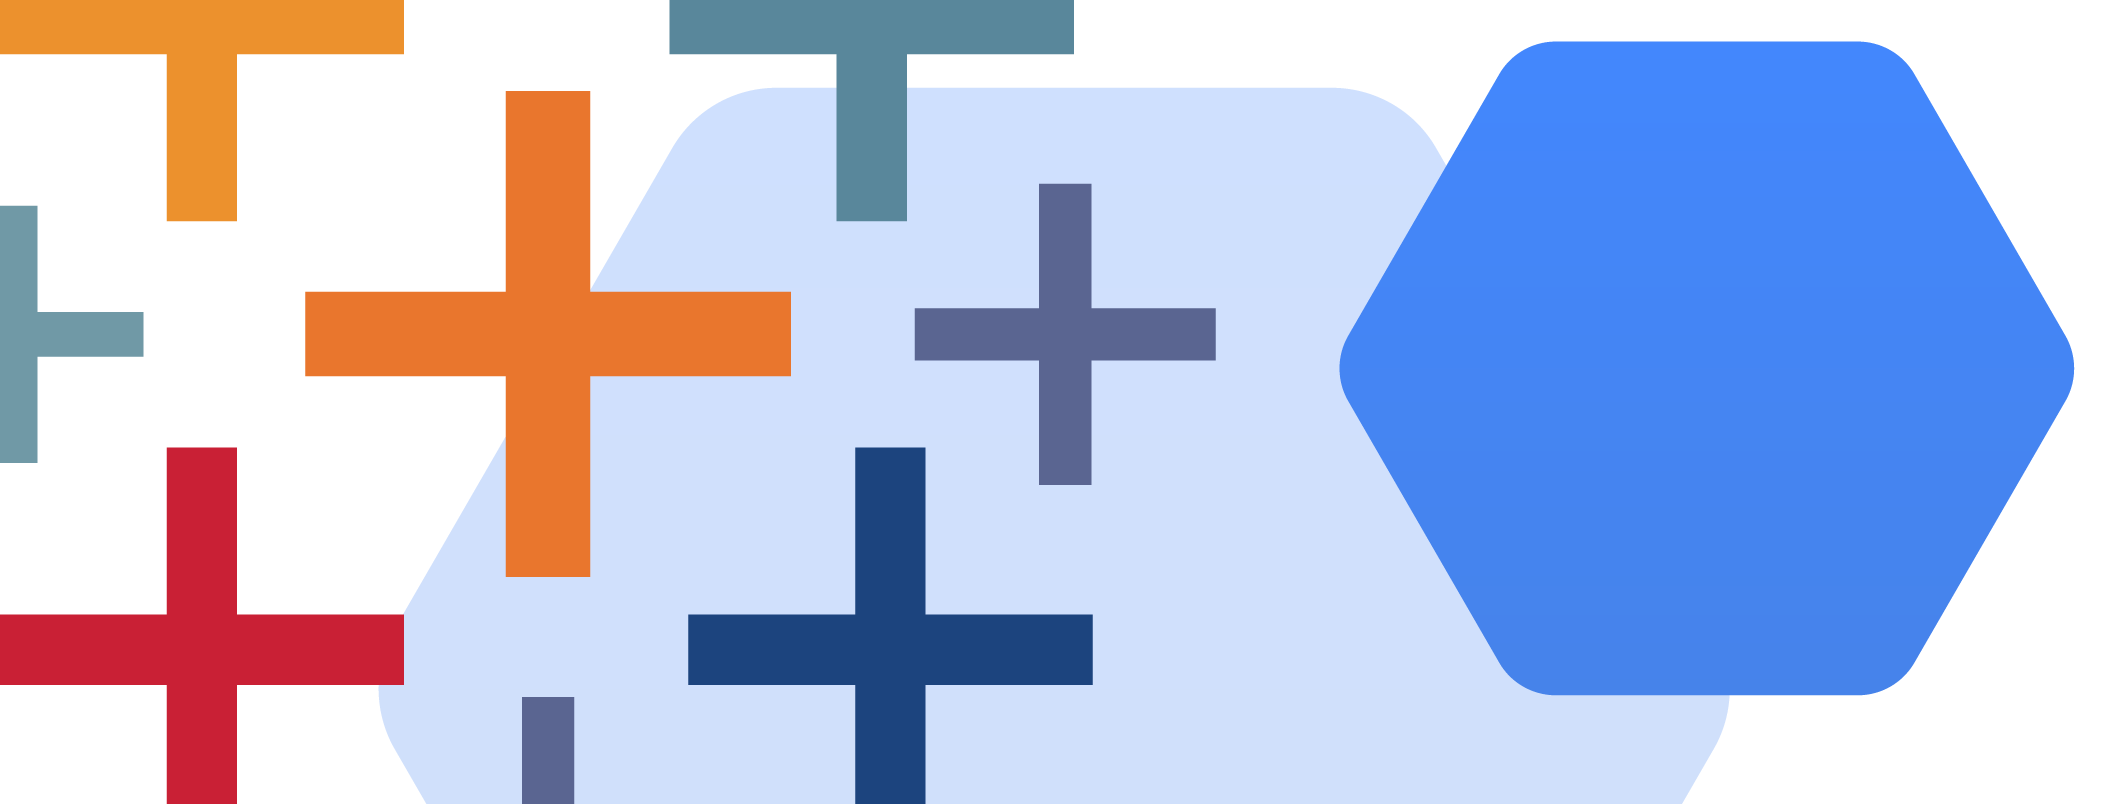 Connecting Tableau to Google Analytics BigQuery Data - Adswerve